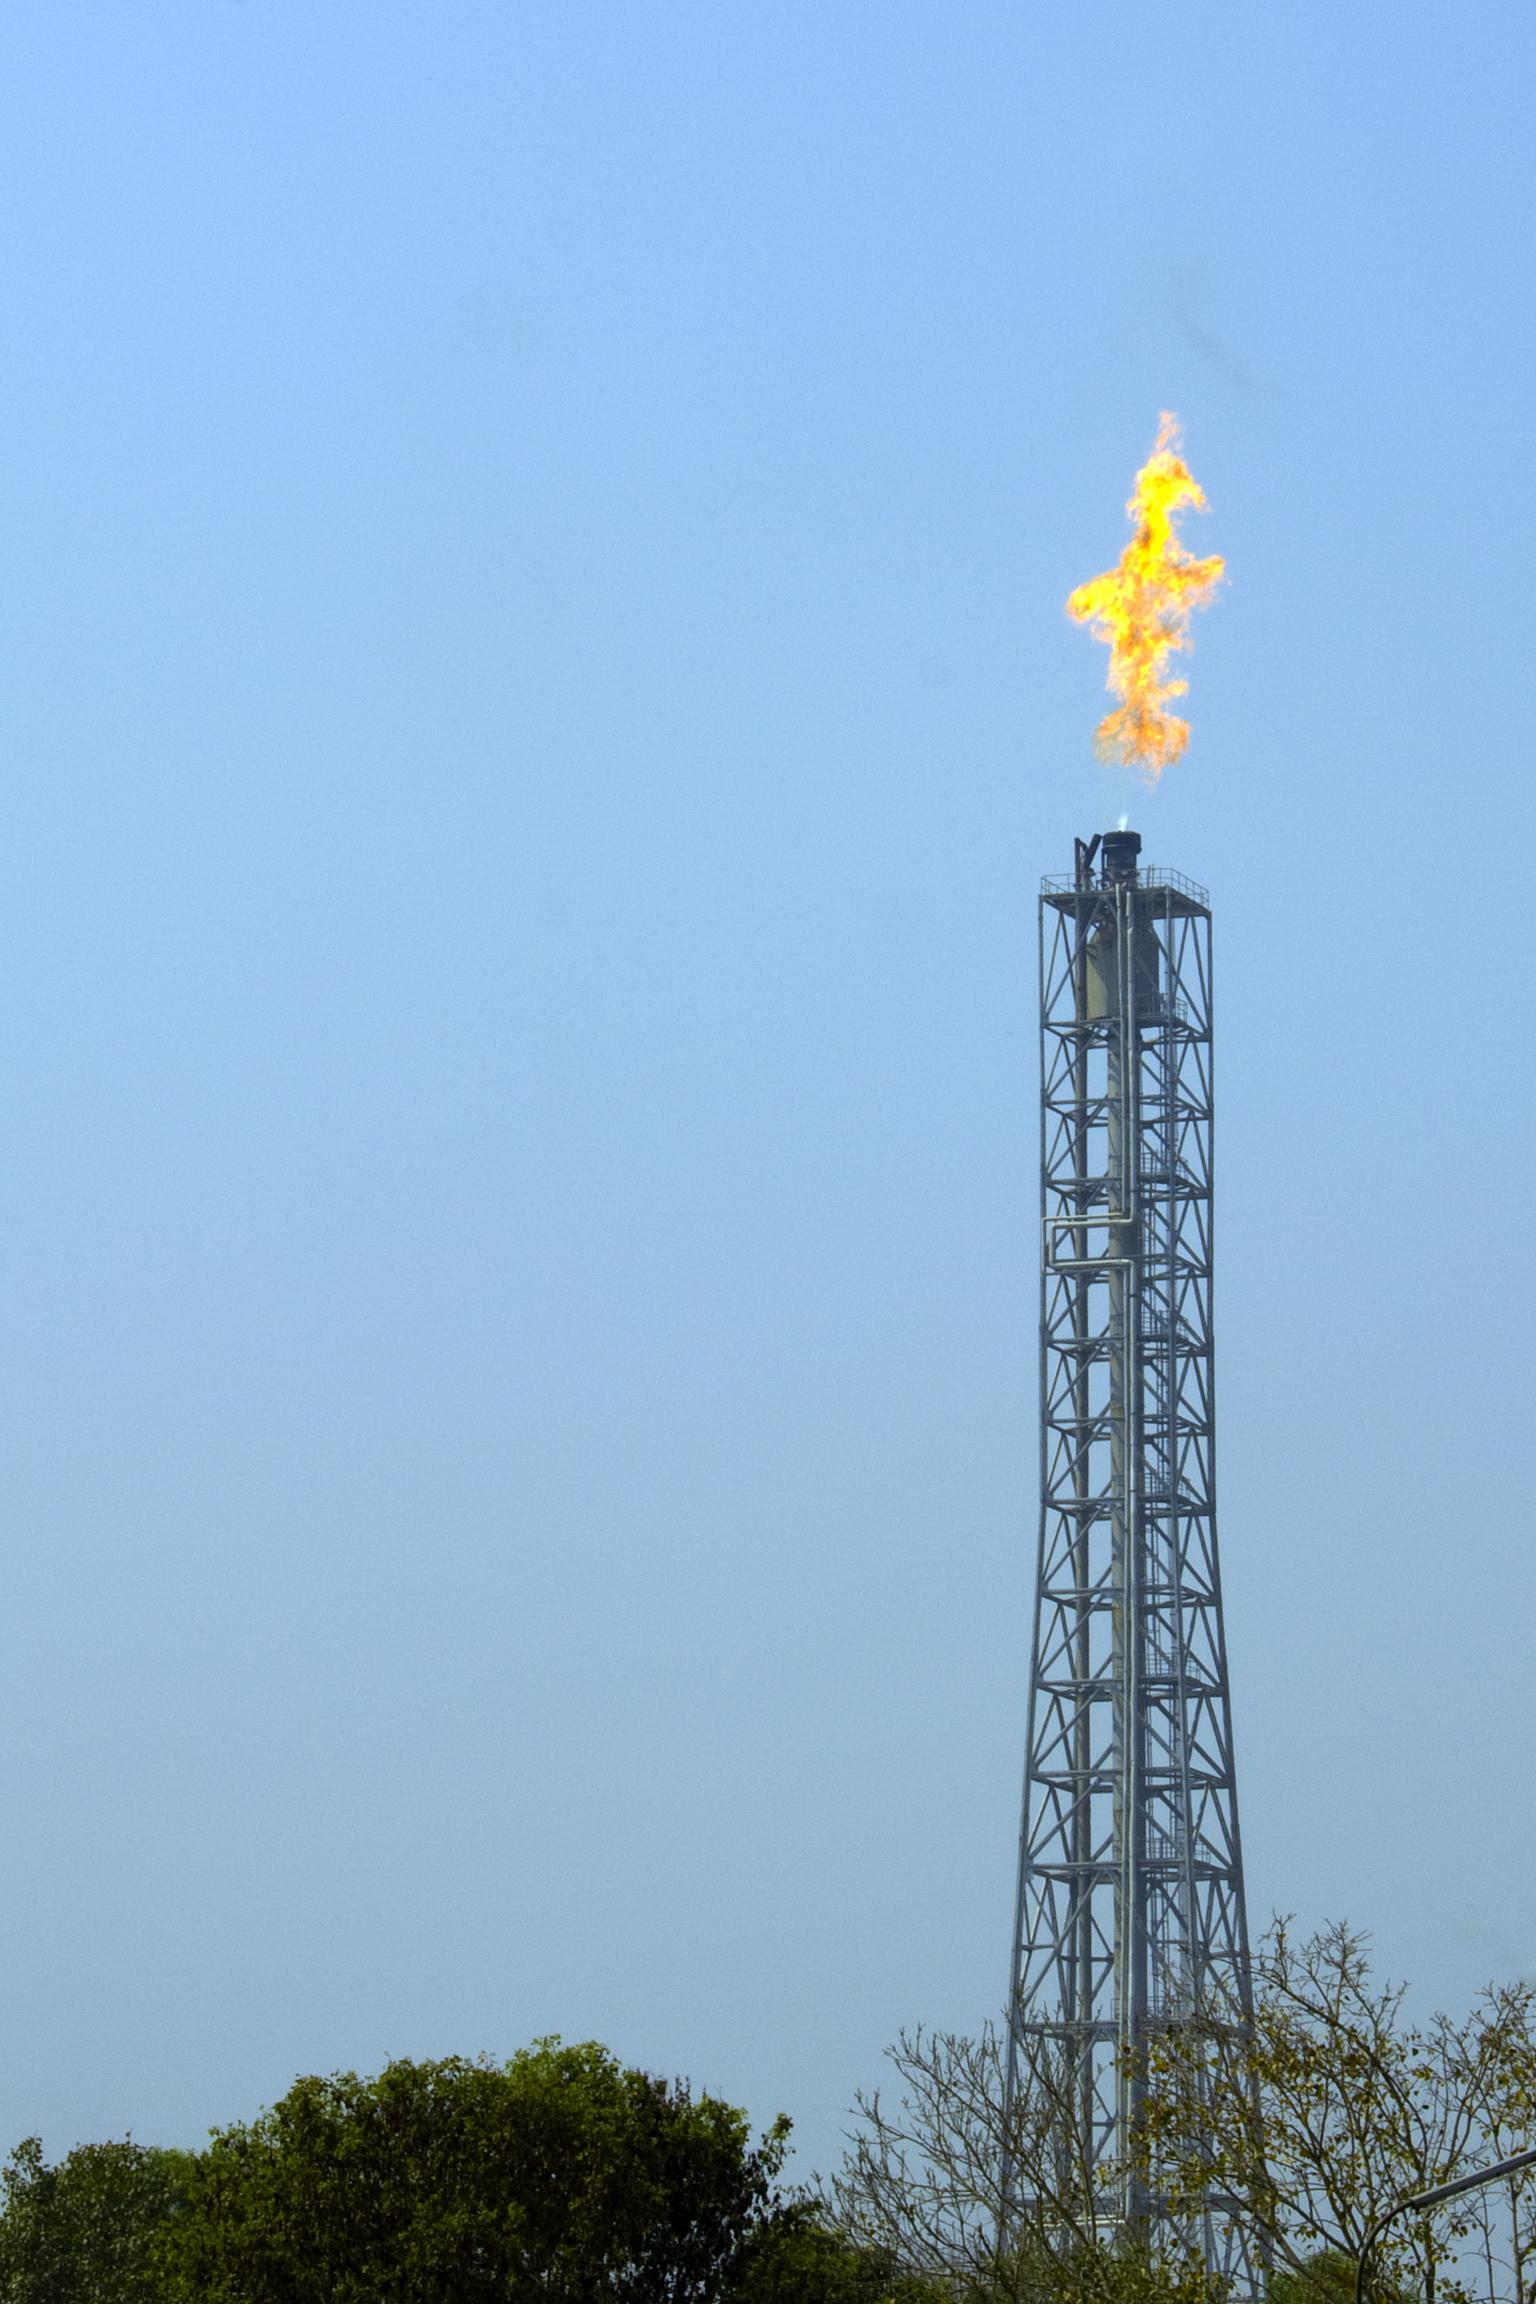 Most flare stacks have sulphur levels that vary greatly from flare event to flare event